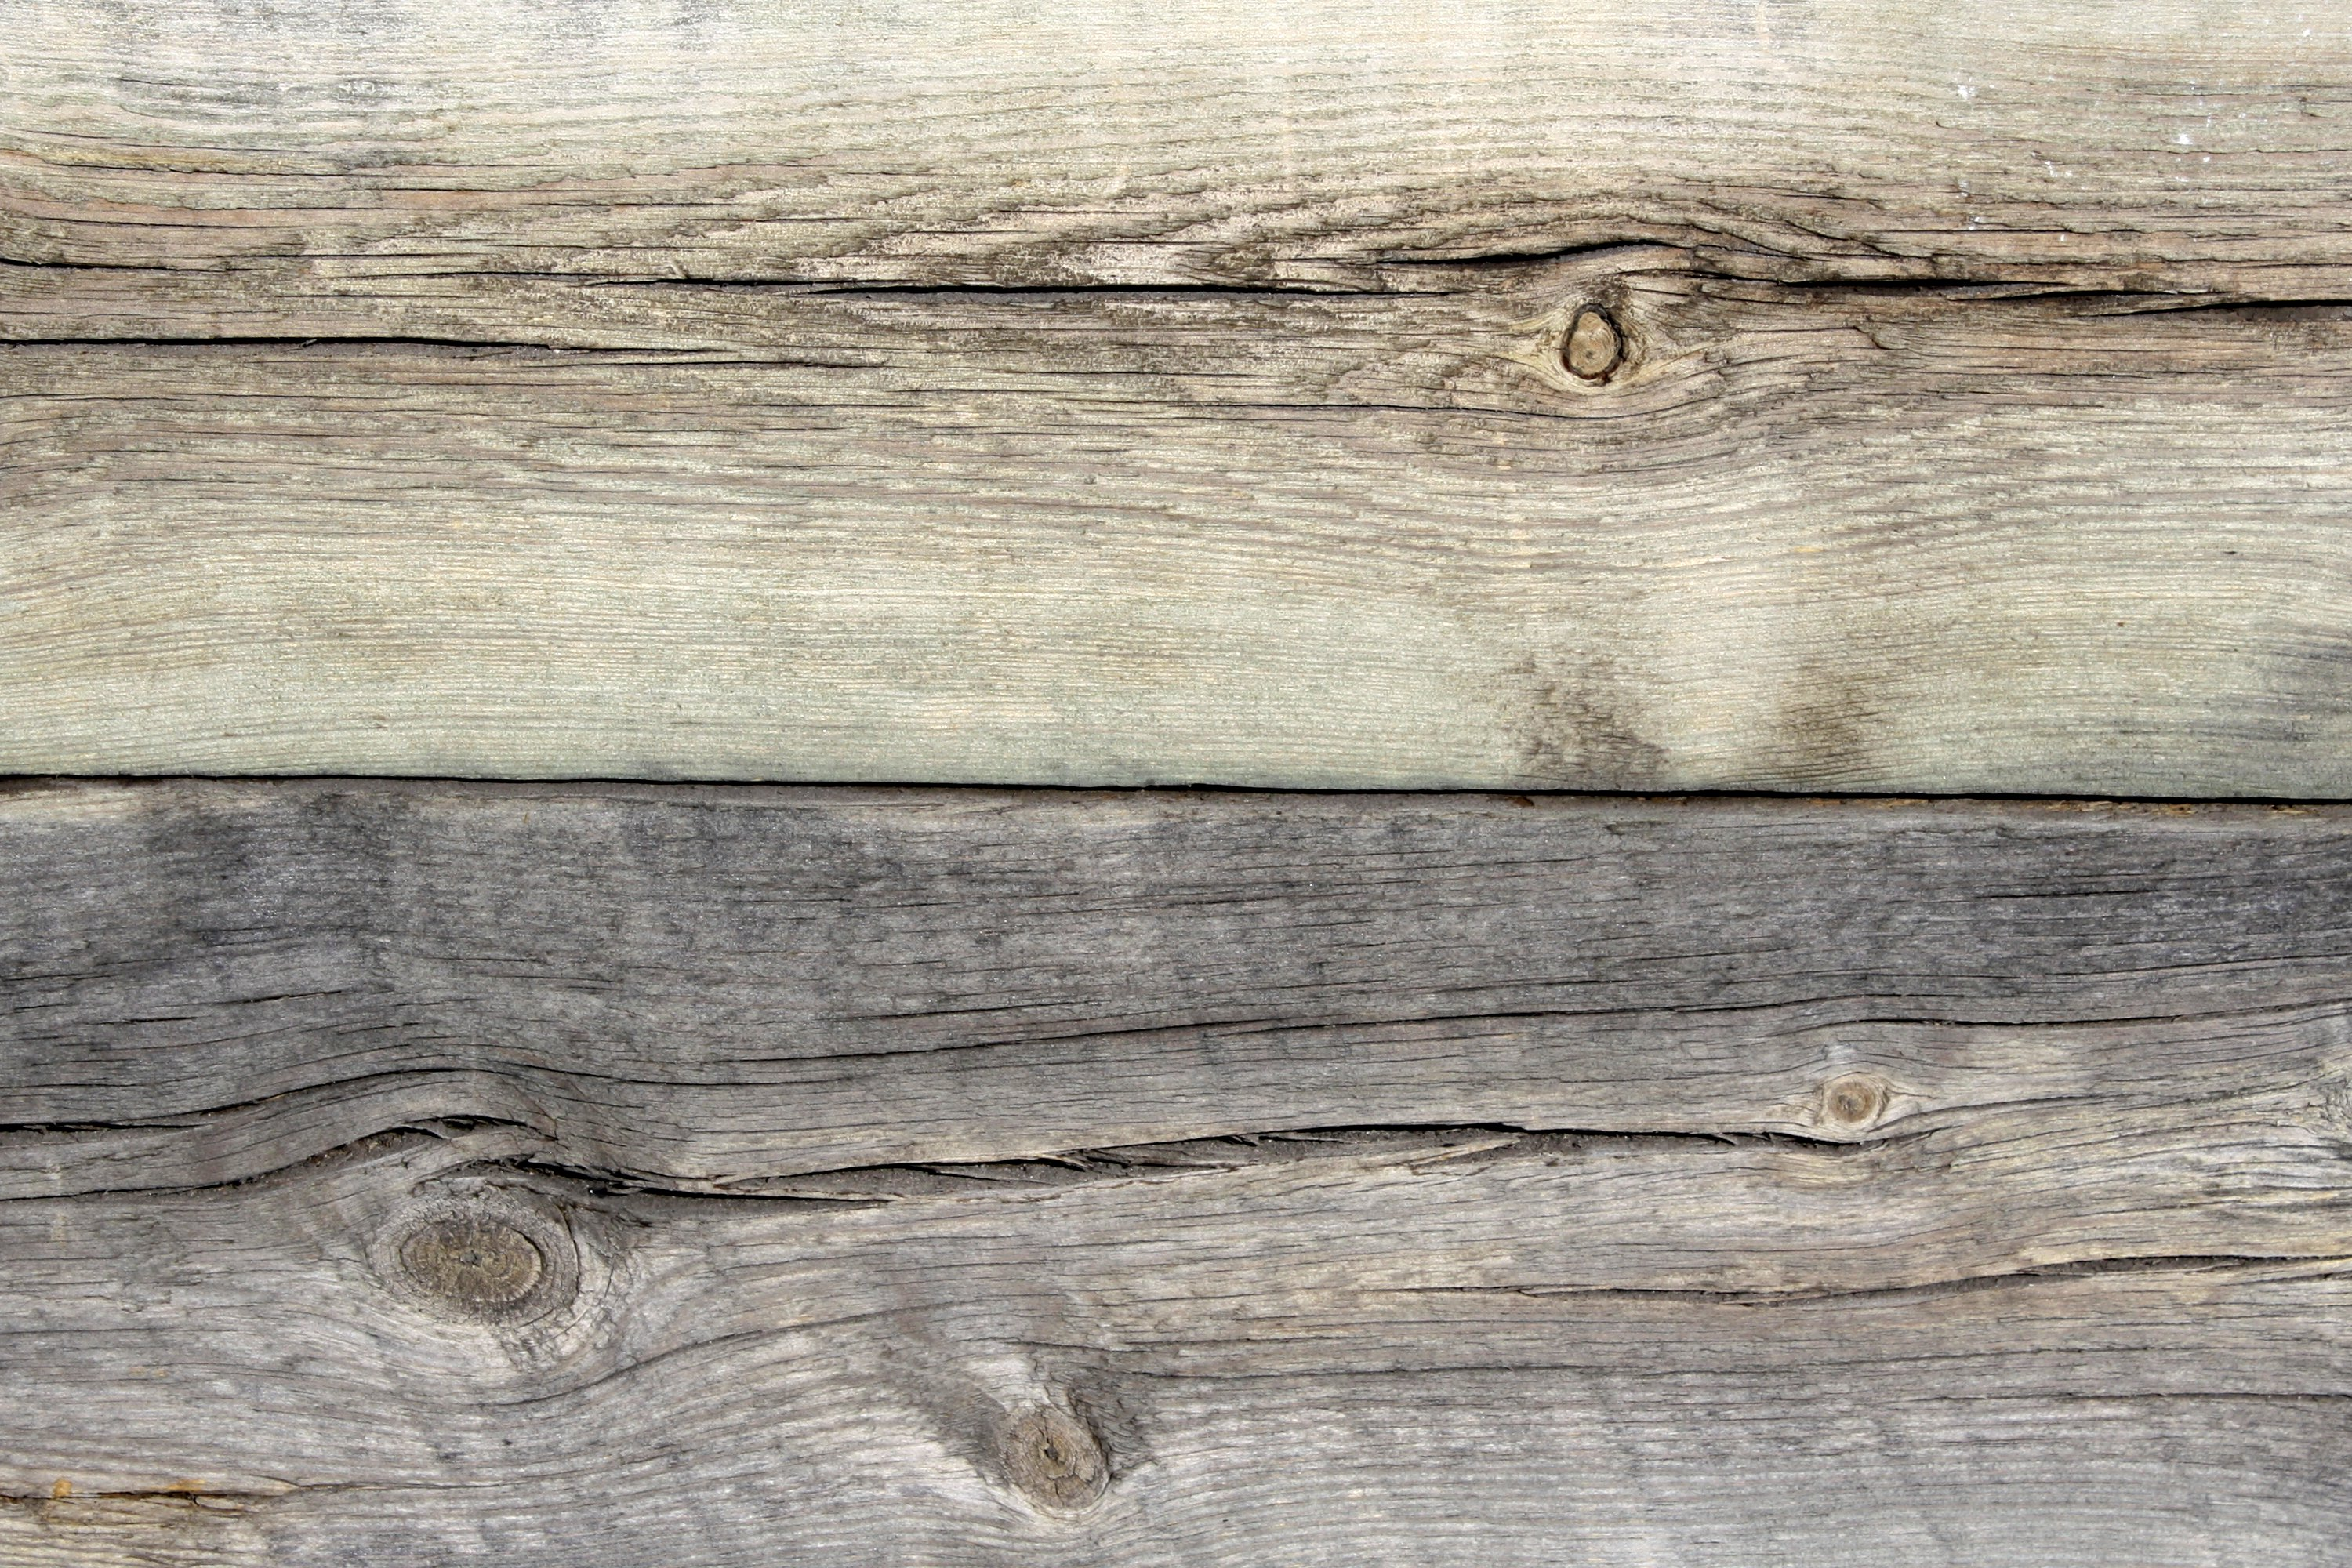 Weathered Wood Boards Close Up Texture Picture.